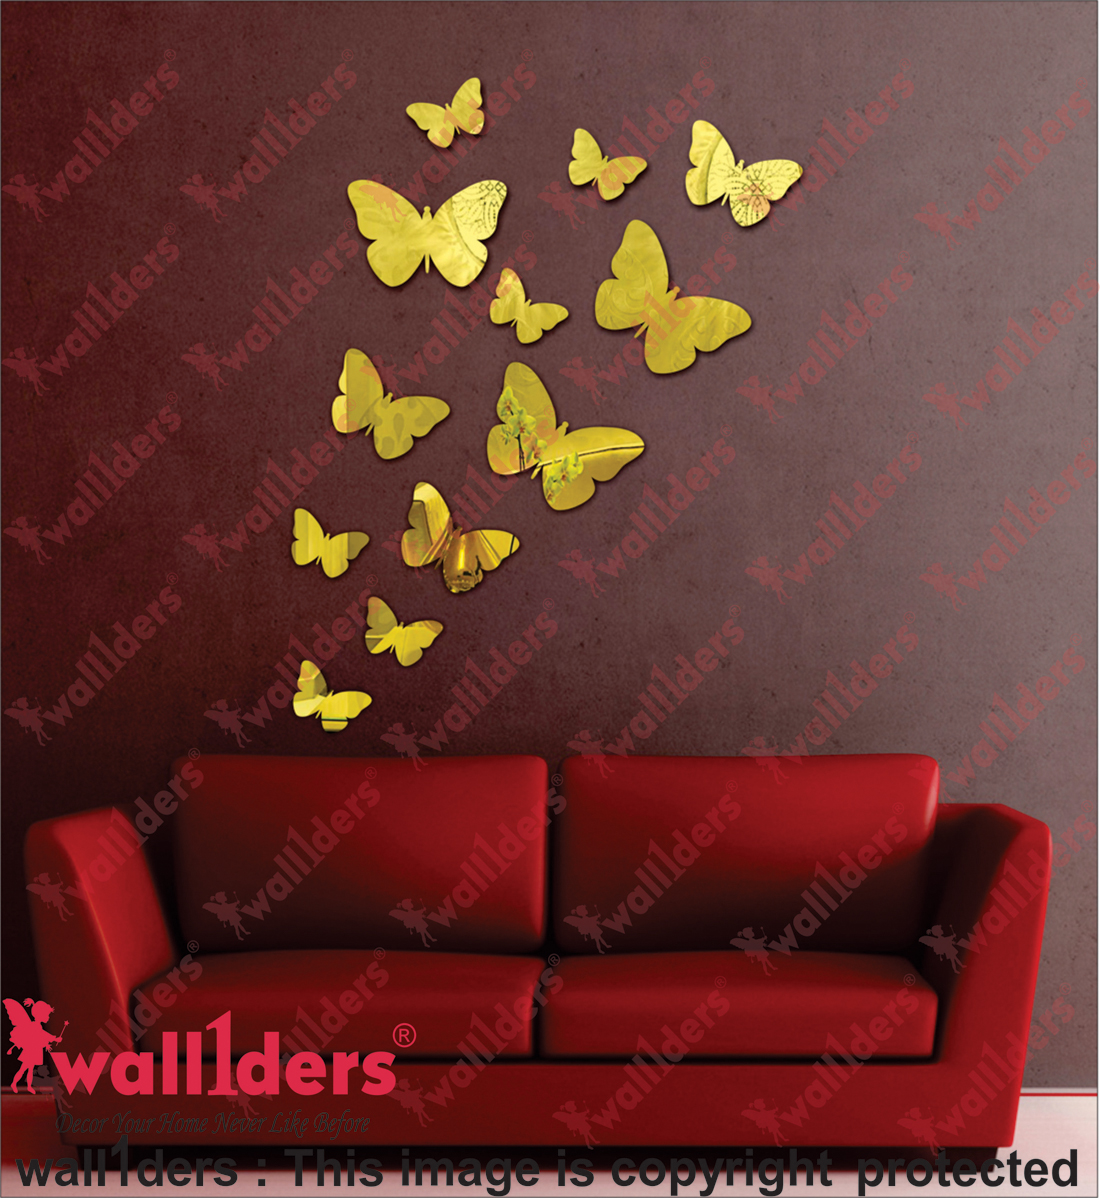 12 Deifferent Size Butterfly Golden PREMIUM QUALITY 3D Acrylic Mirror wall stickers for home office